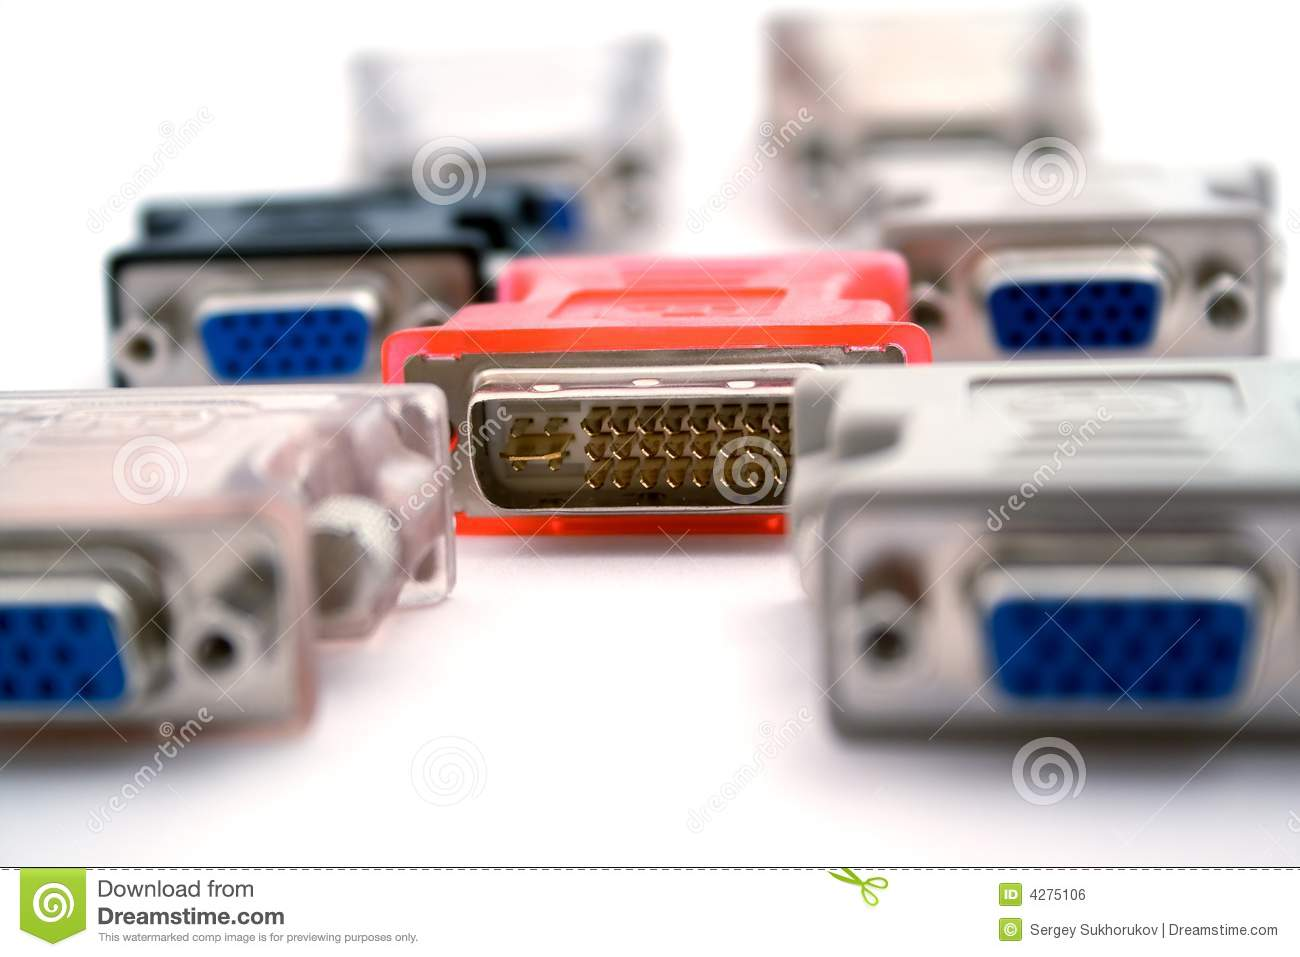 Adapters vga-dvi on a white background